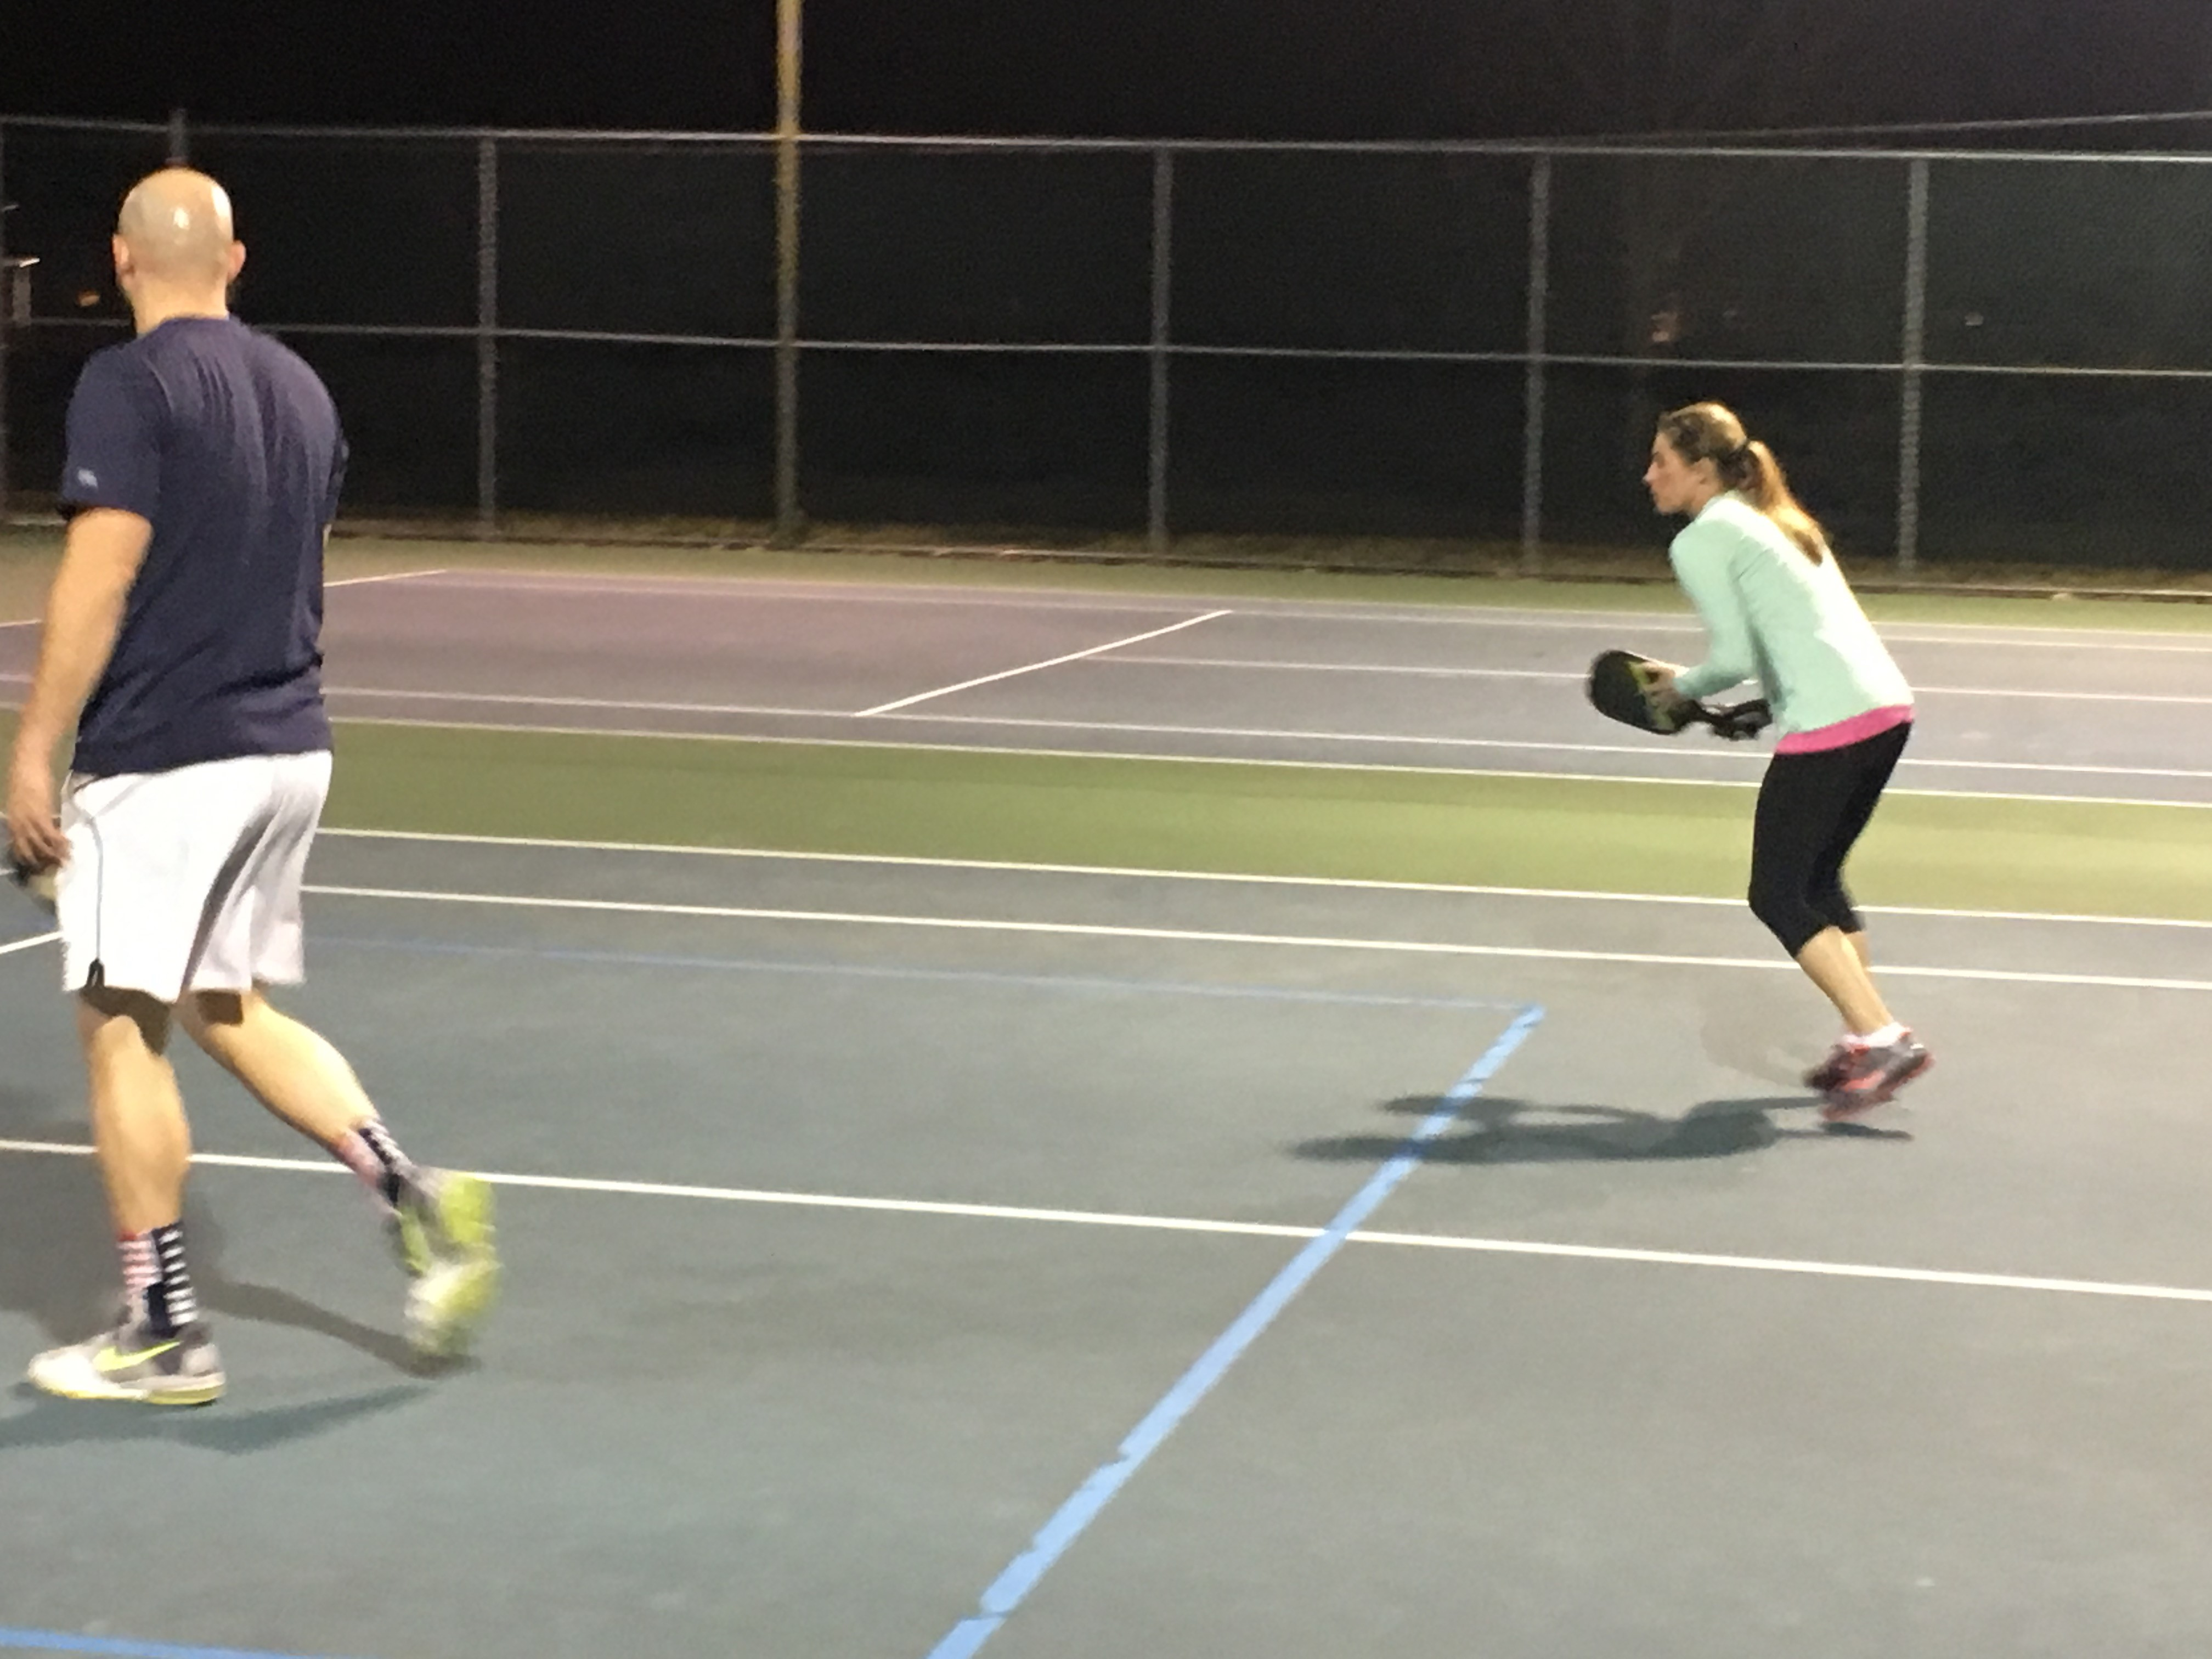 trussville pickleball, birmingham pickleball, pickleball, family pickleball, trussville tennis courts, trussville